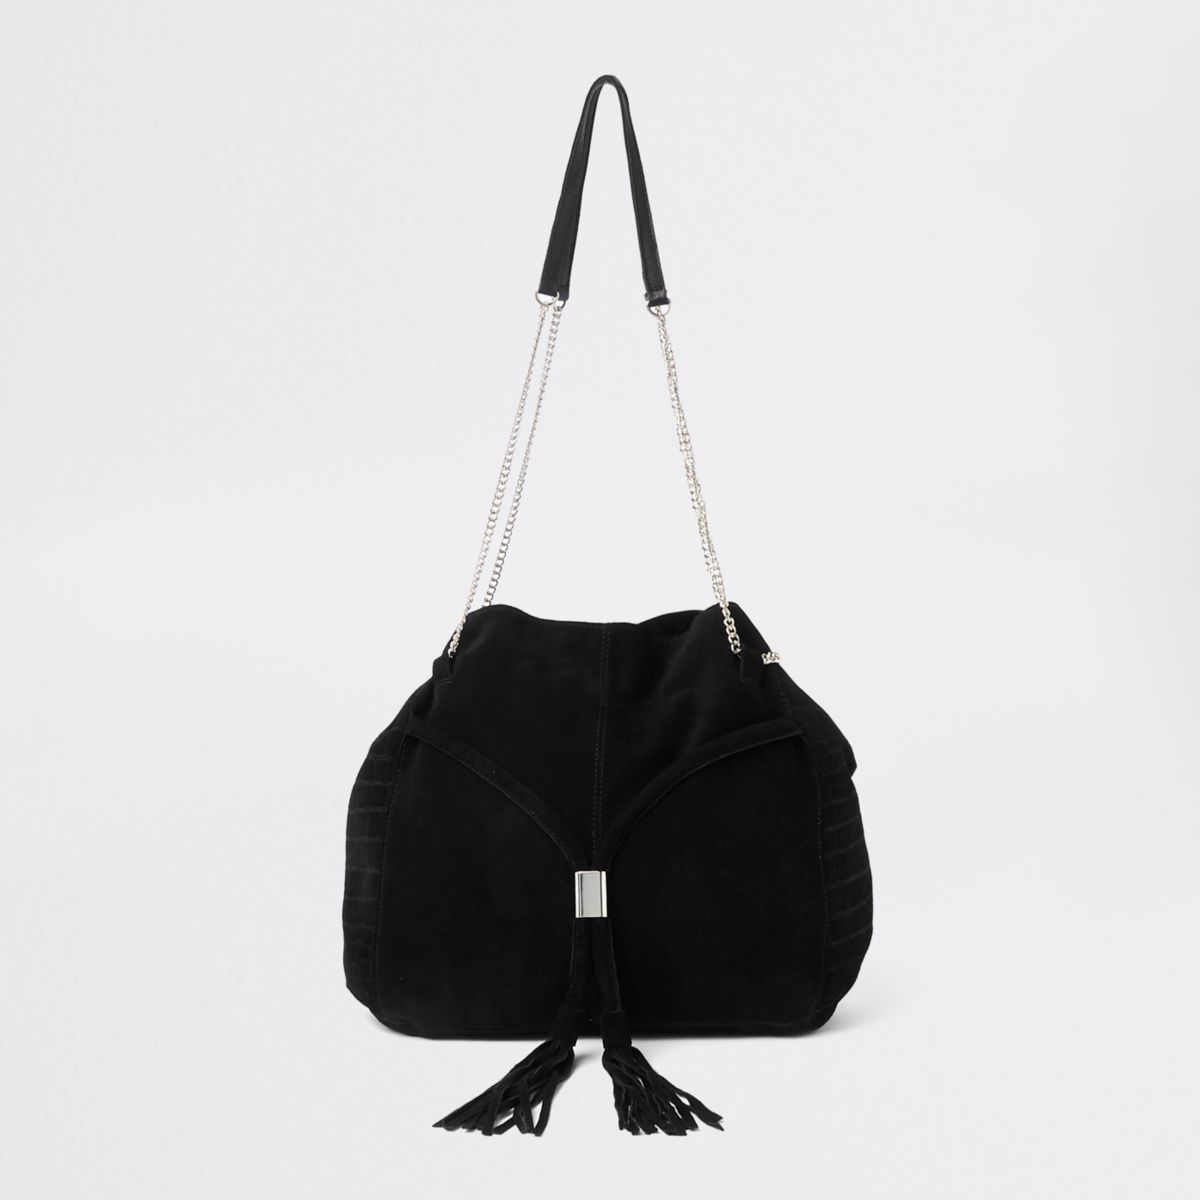 Black leather gold tone chain handle tote bag